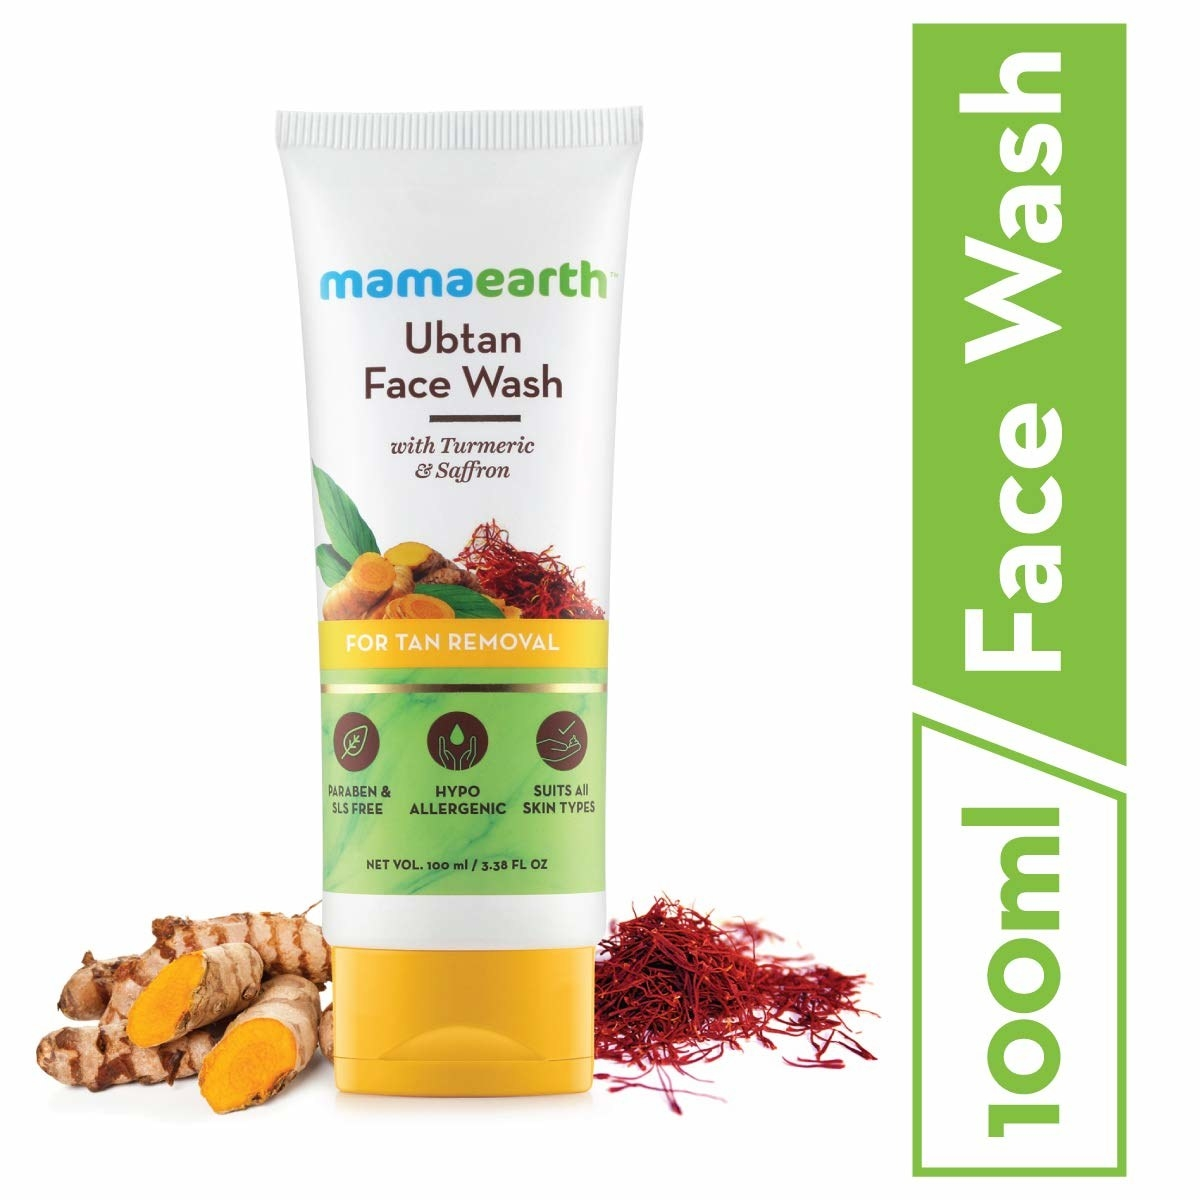 Tube of the face wash next to turmeric and saffron.